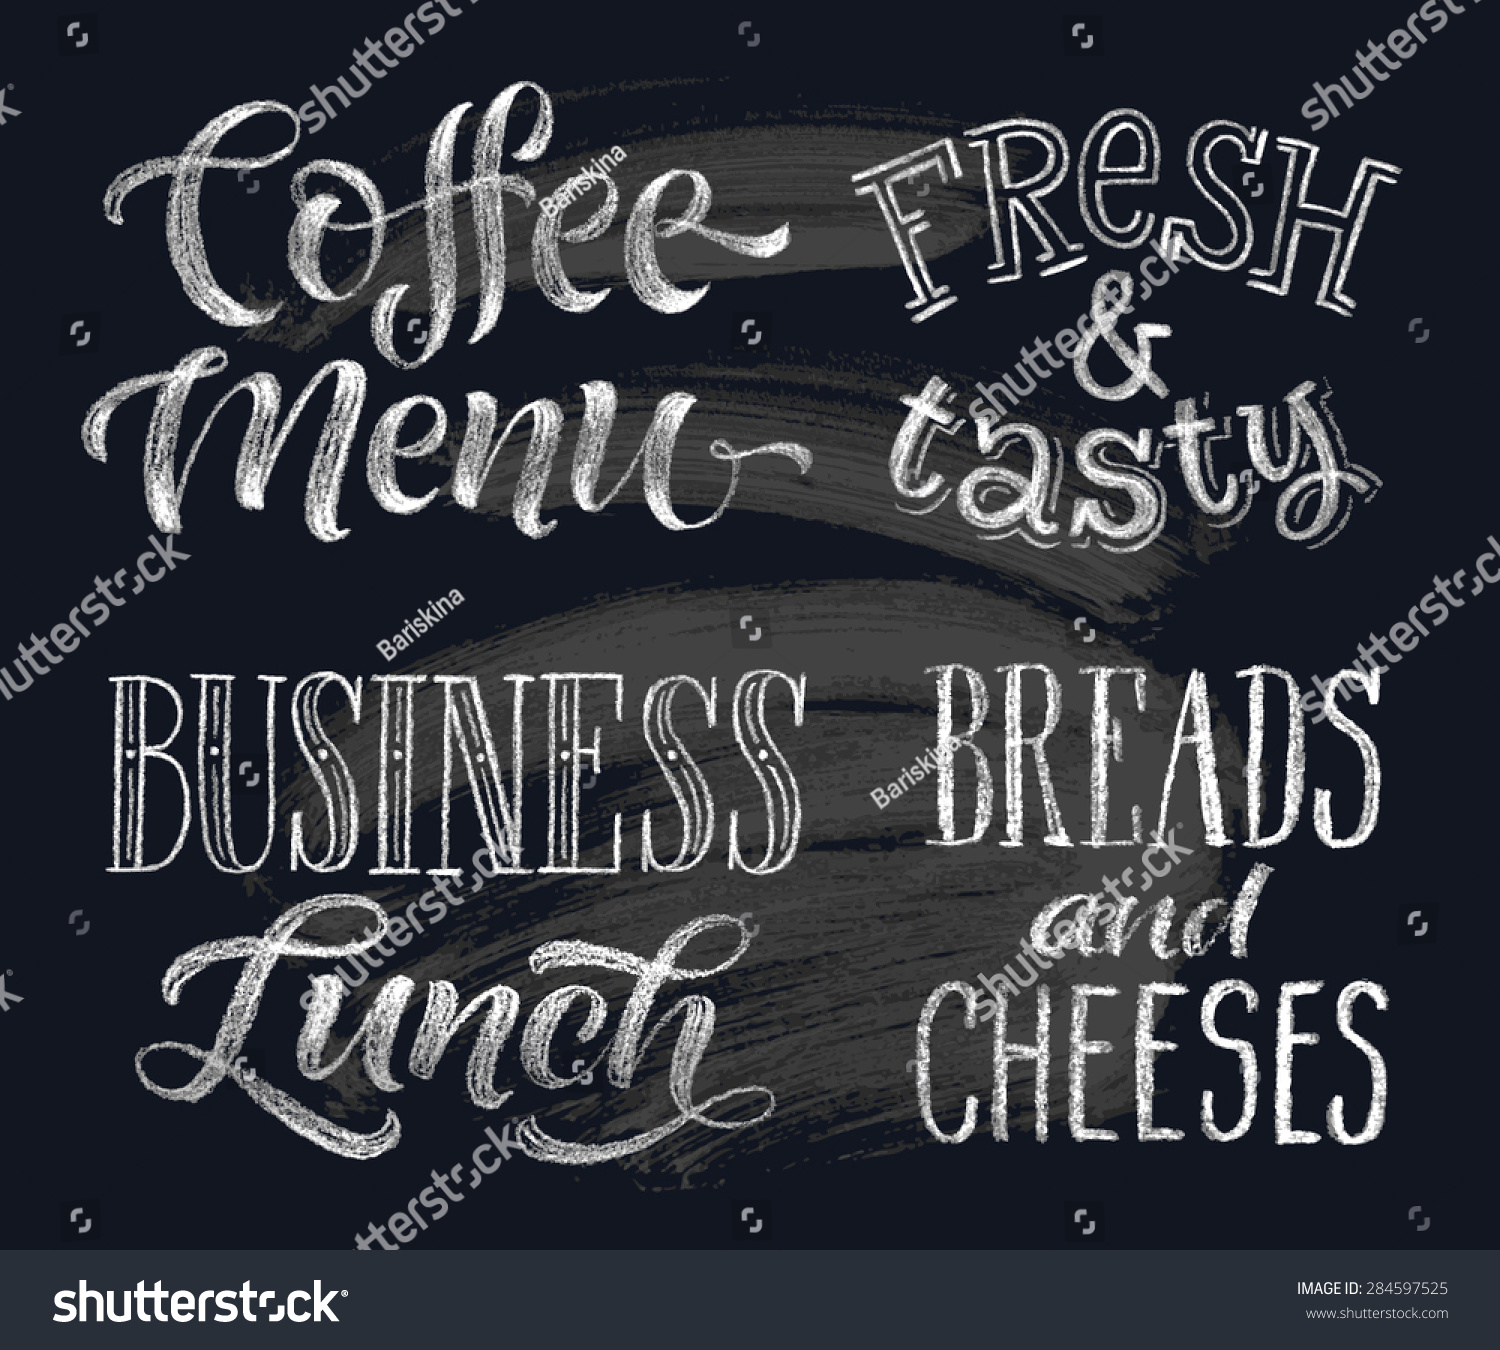 Vector Illustration With Hand Drawn Lettering Coffee Menu Freshtasty Business Lunch Breads And Cheeses Calligraphic Typographic Elements On Chalk